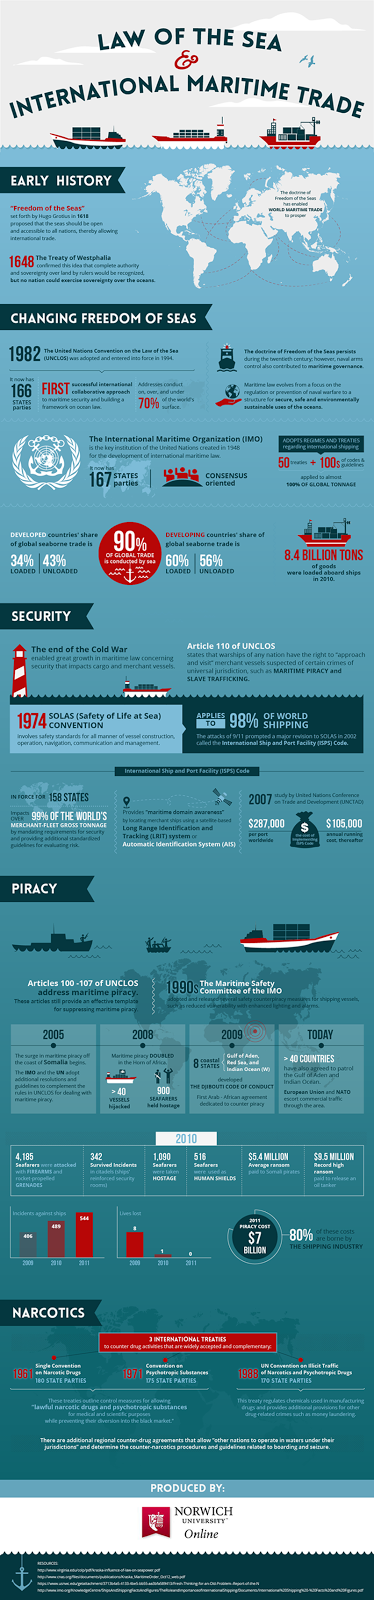 Infographic on International Maritime Law